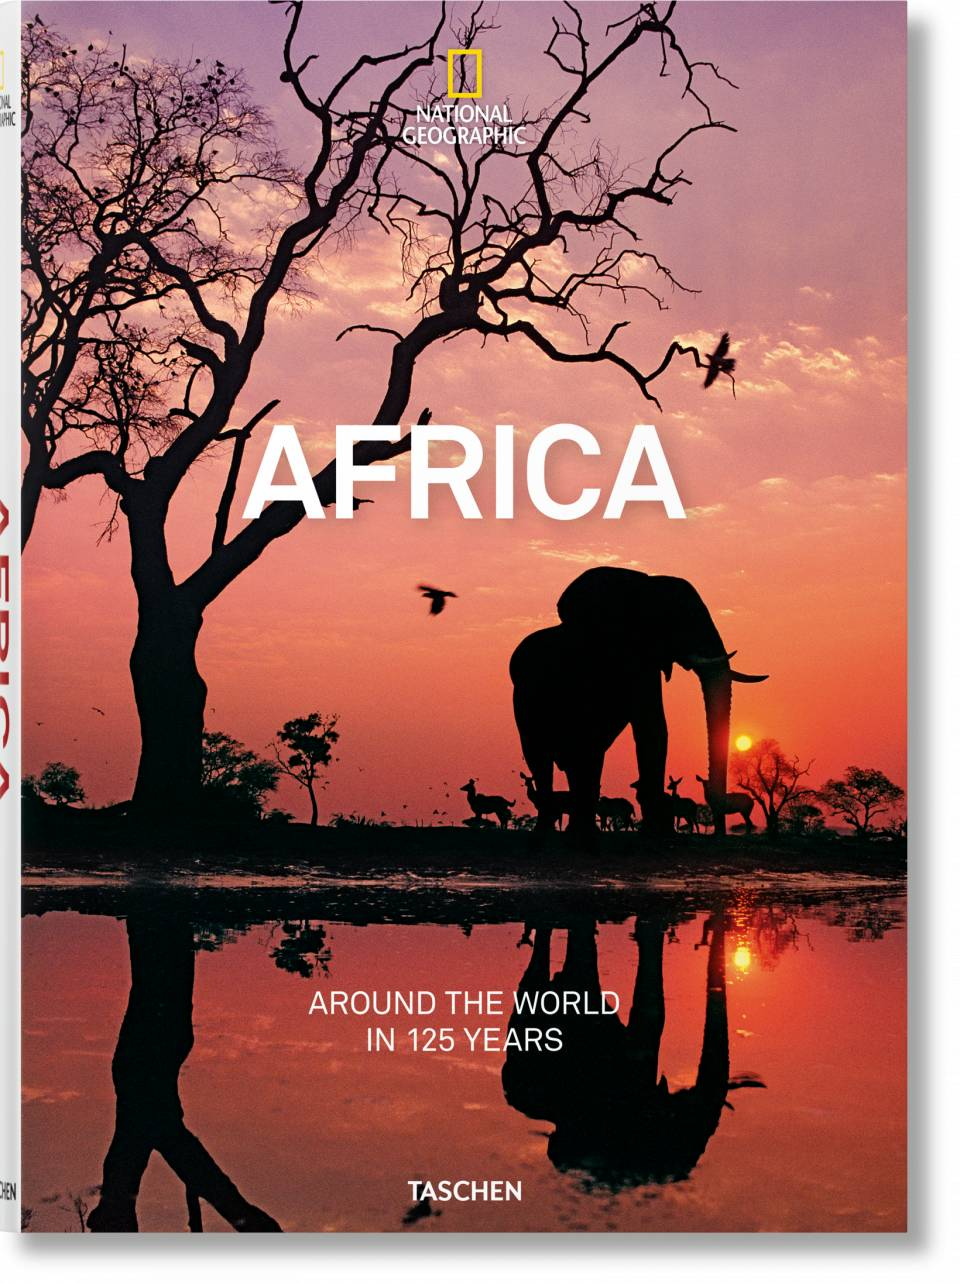 National Geographic. Around the World in 125 Years. Africa - image 1